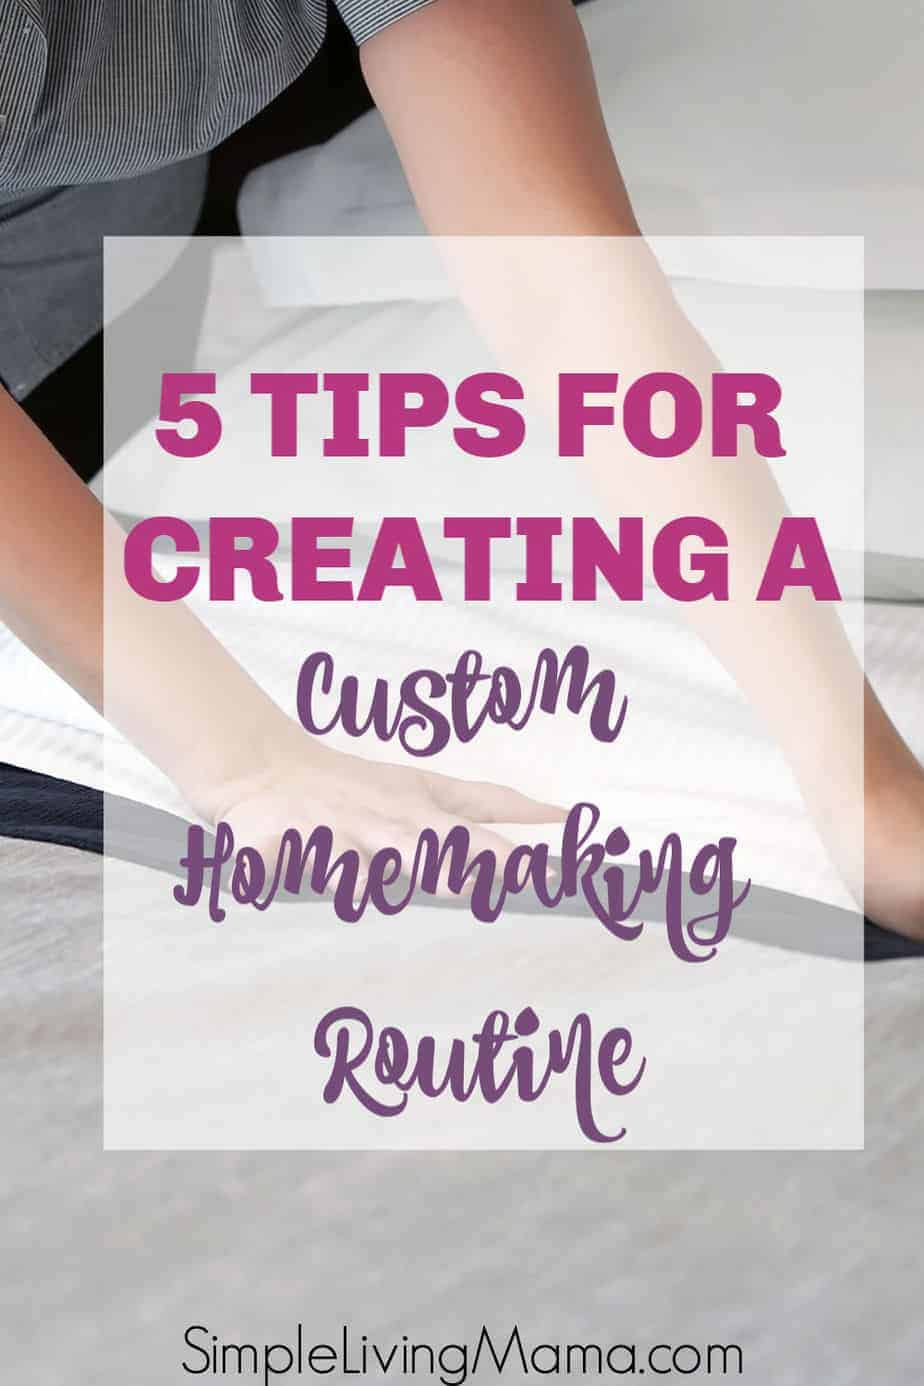 5 Tips for Creating a Custom Homemaking Routine